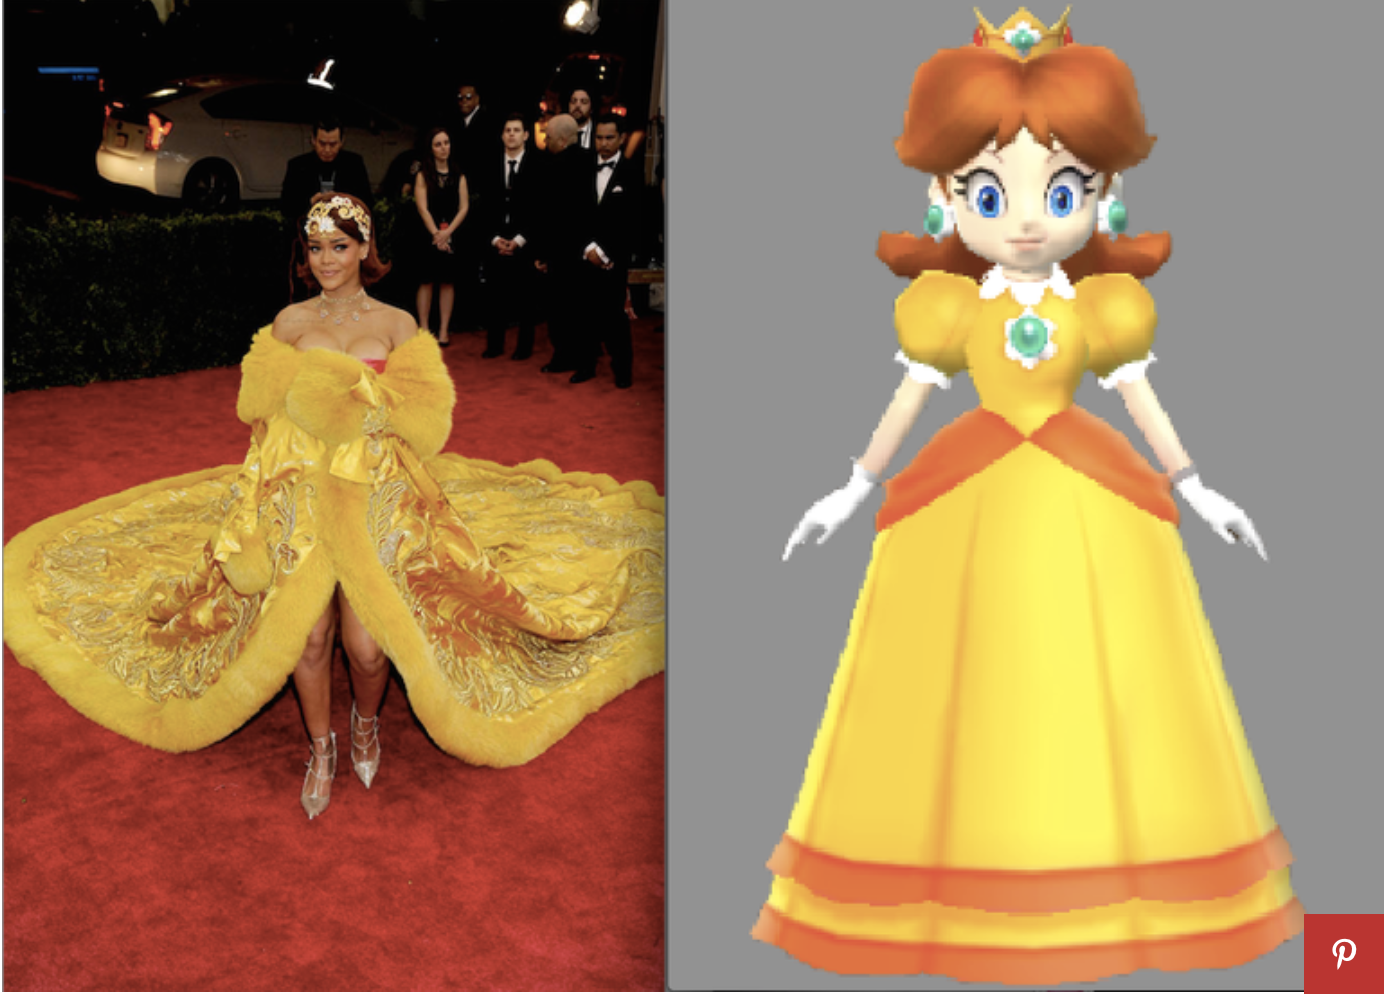 7 photos de Rihanna cosplay dans l'univers de mario